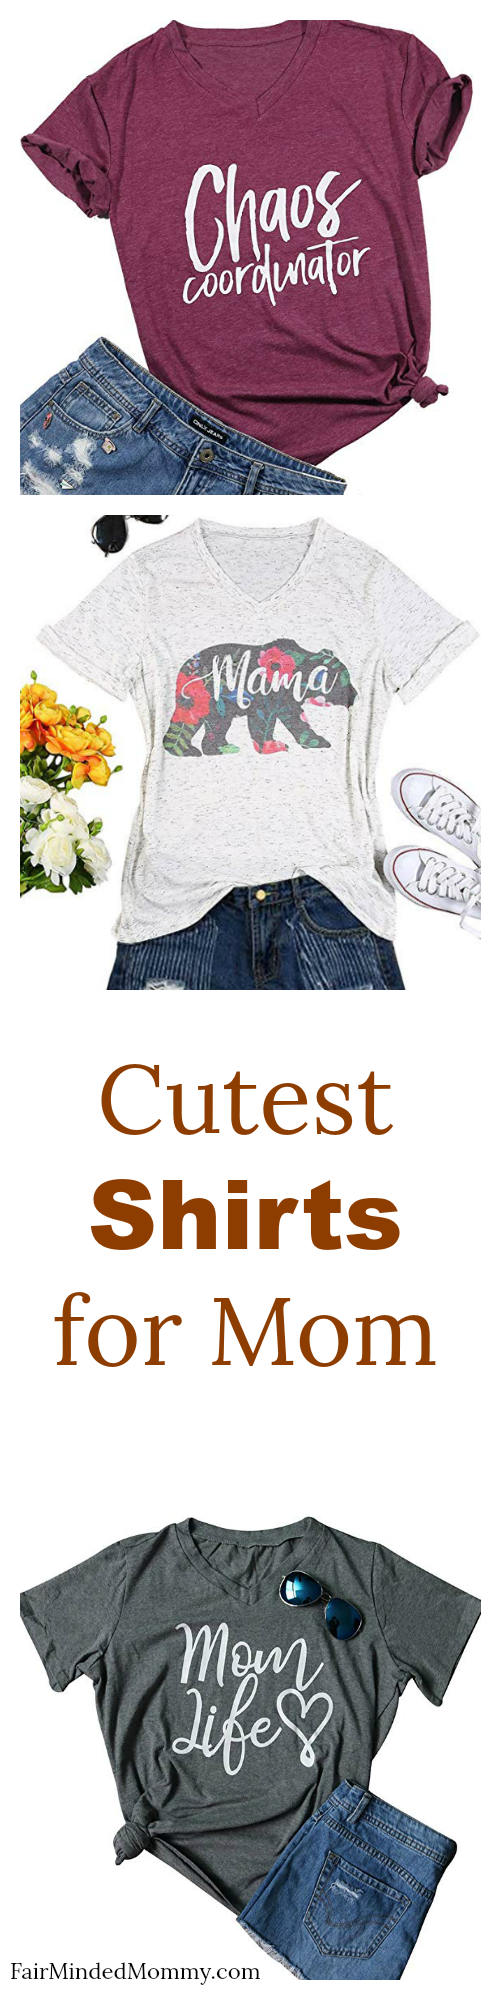 5 Cutest Mom Shirts